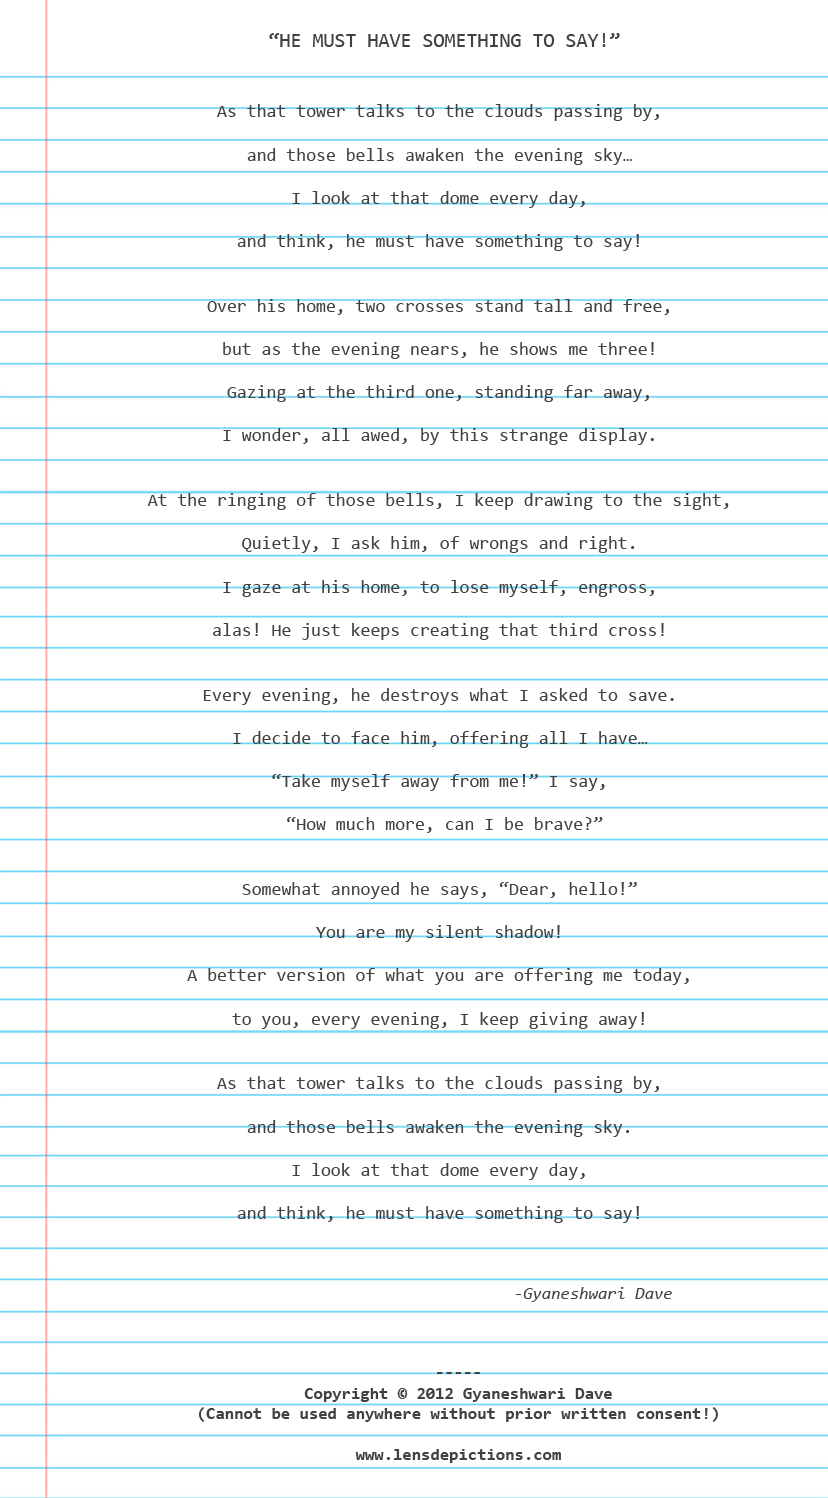 Copyrighted-church-poem-lensdepictions